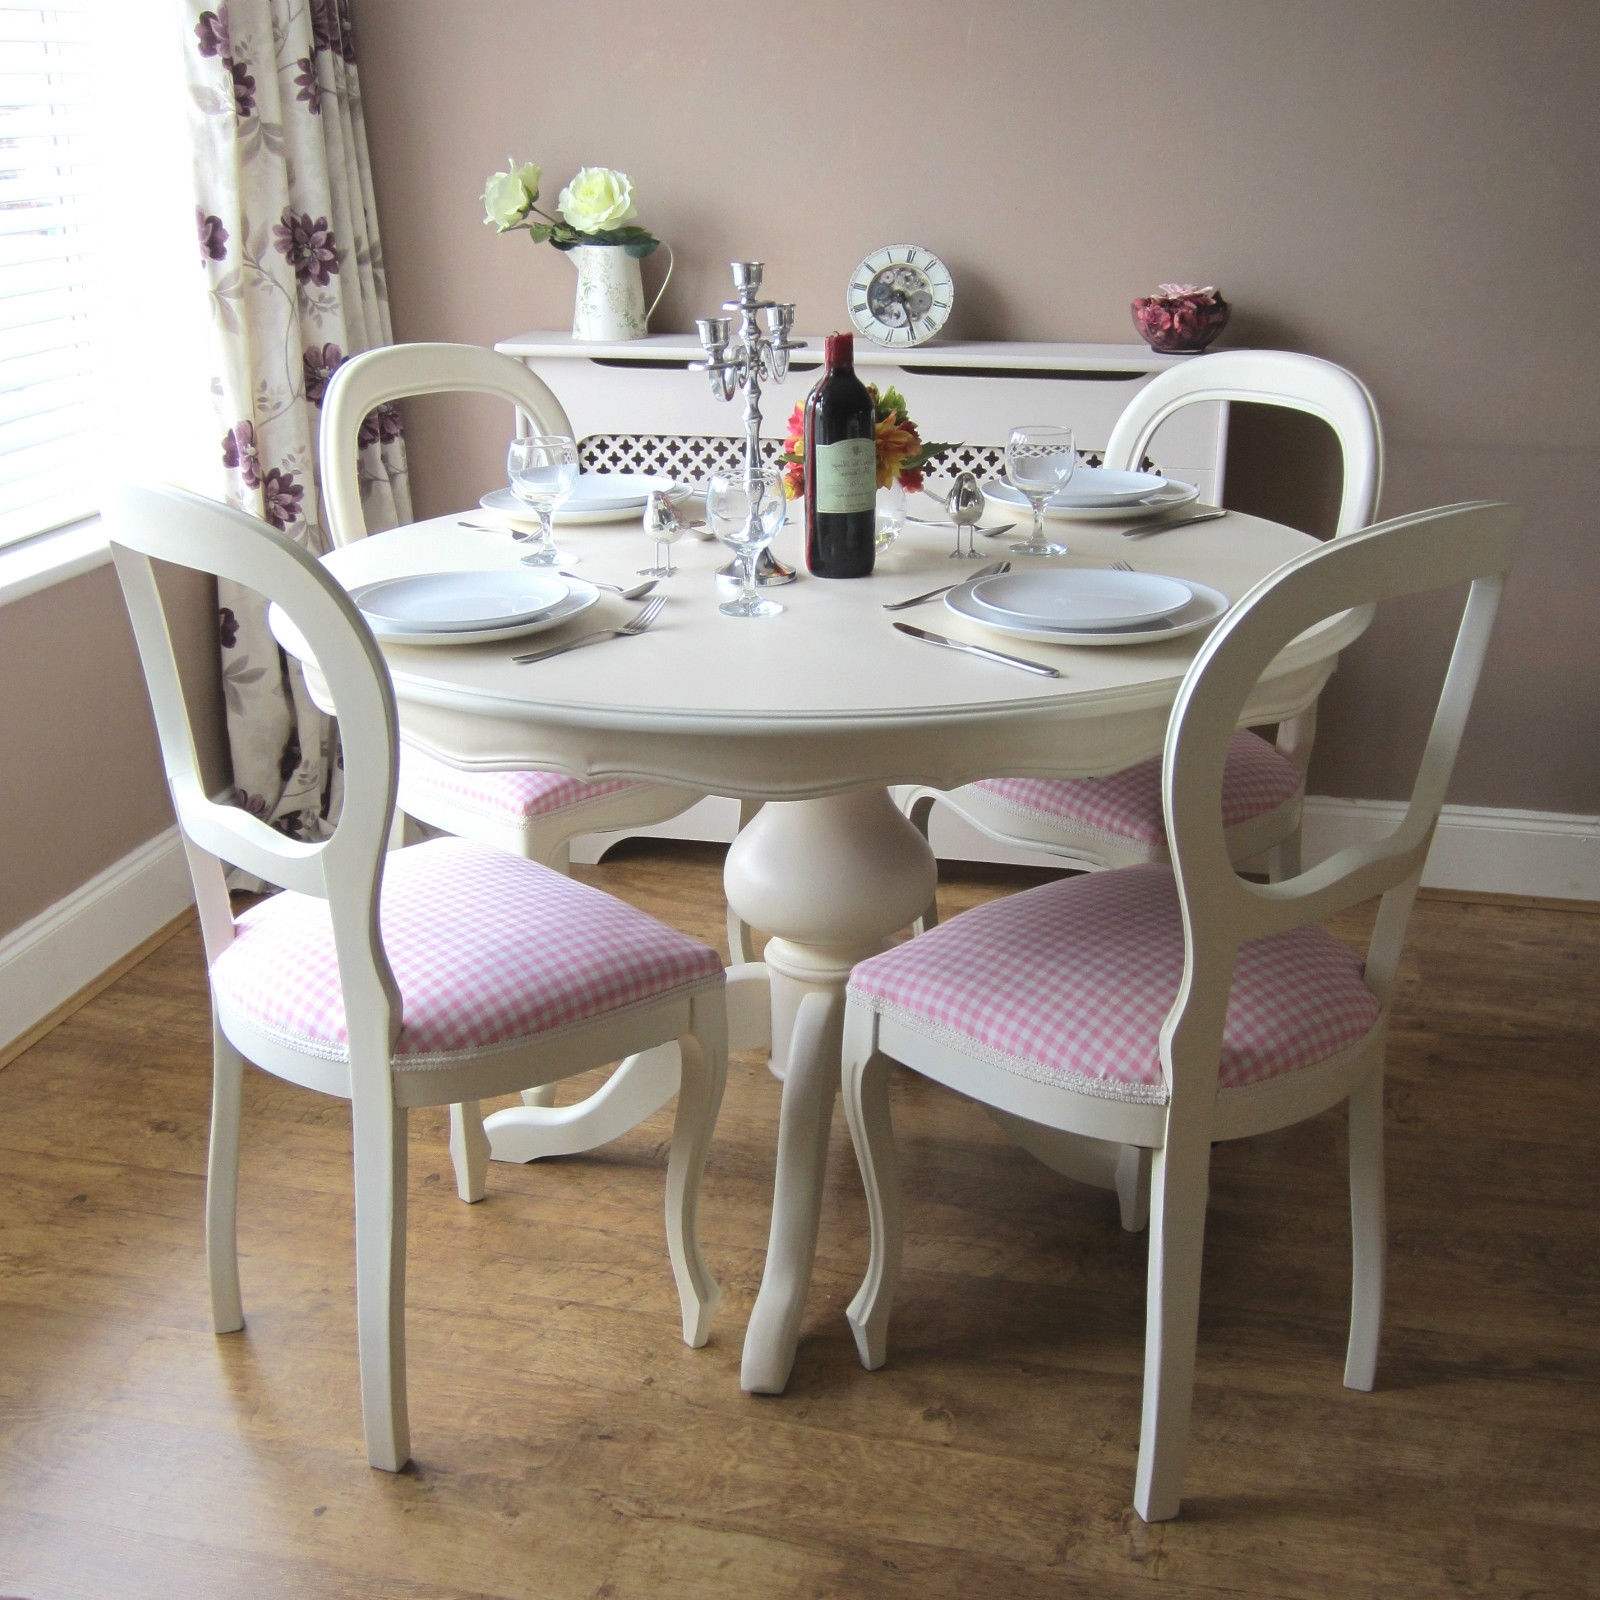 Shabby Chic Table And Chairs (View 6 of 25)